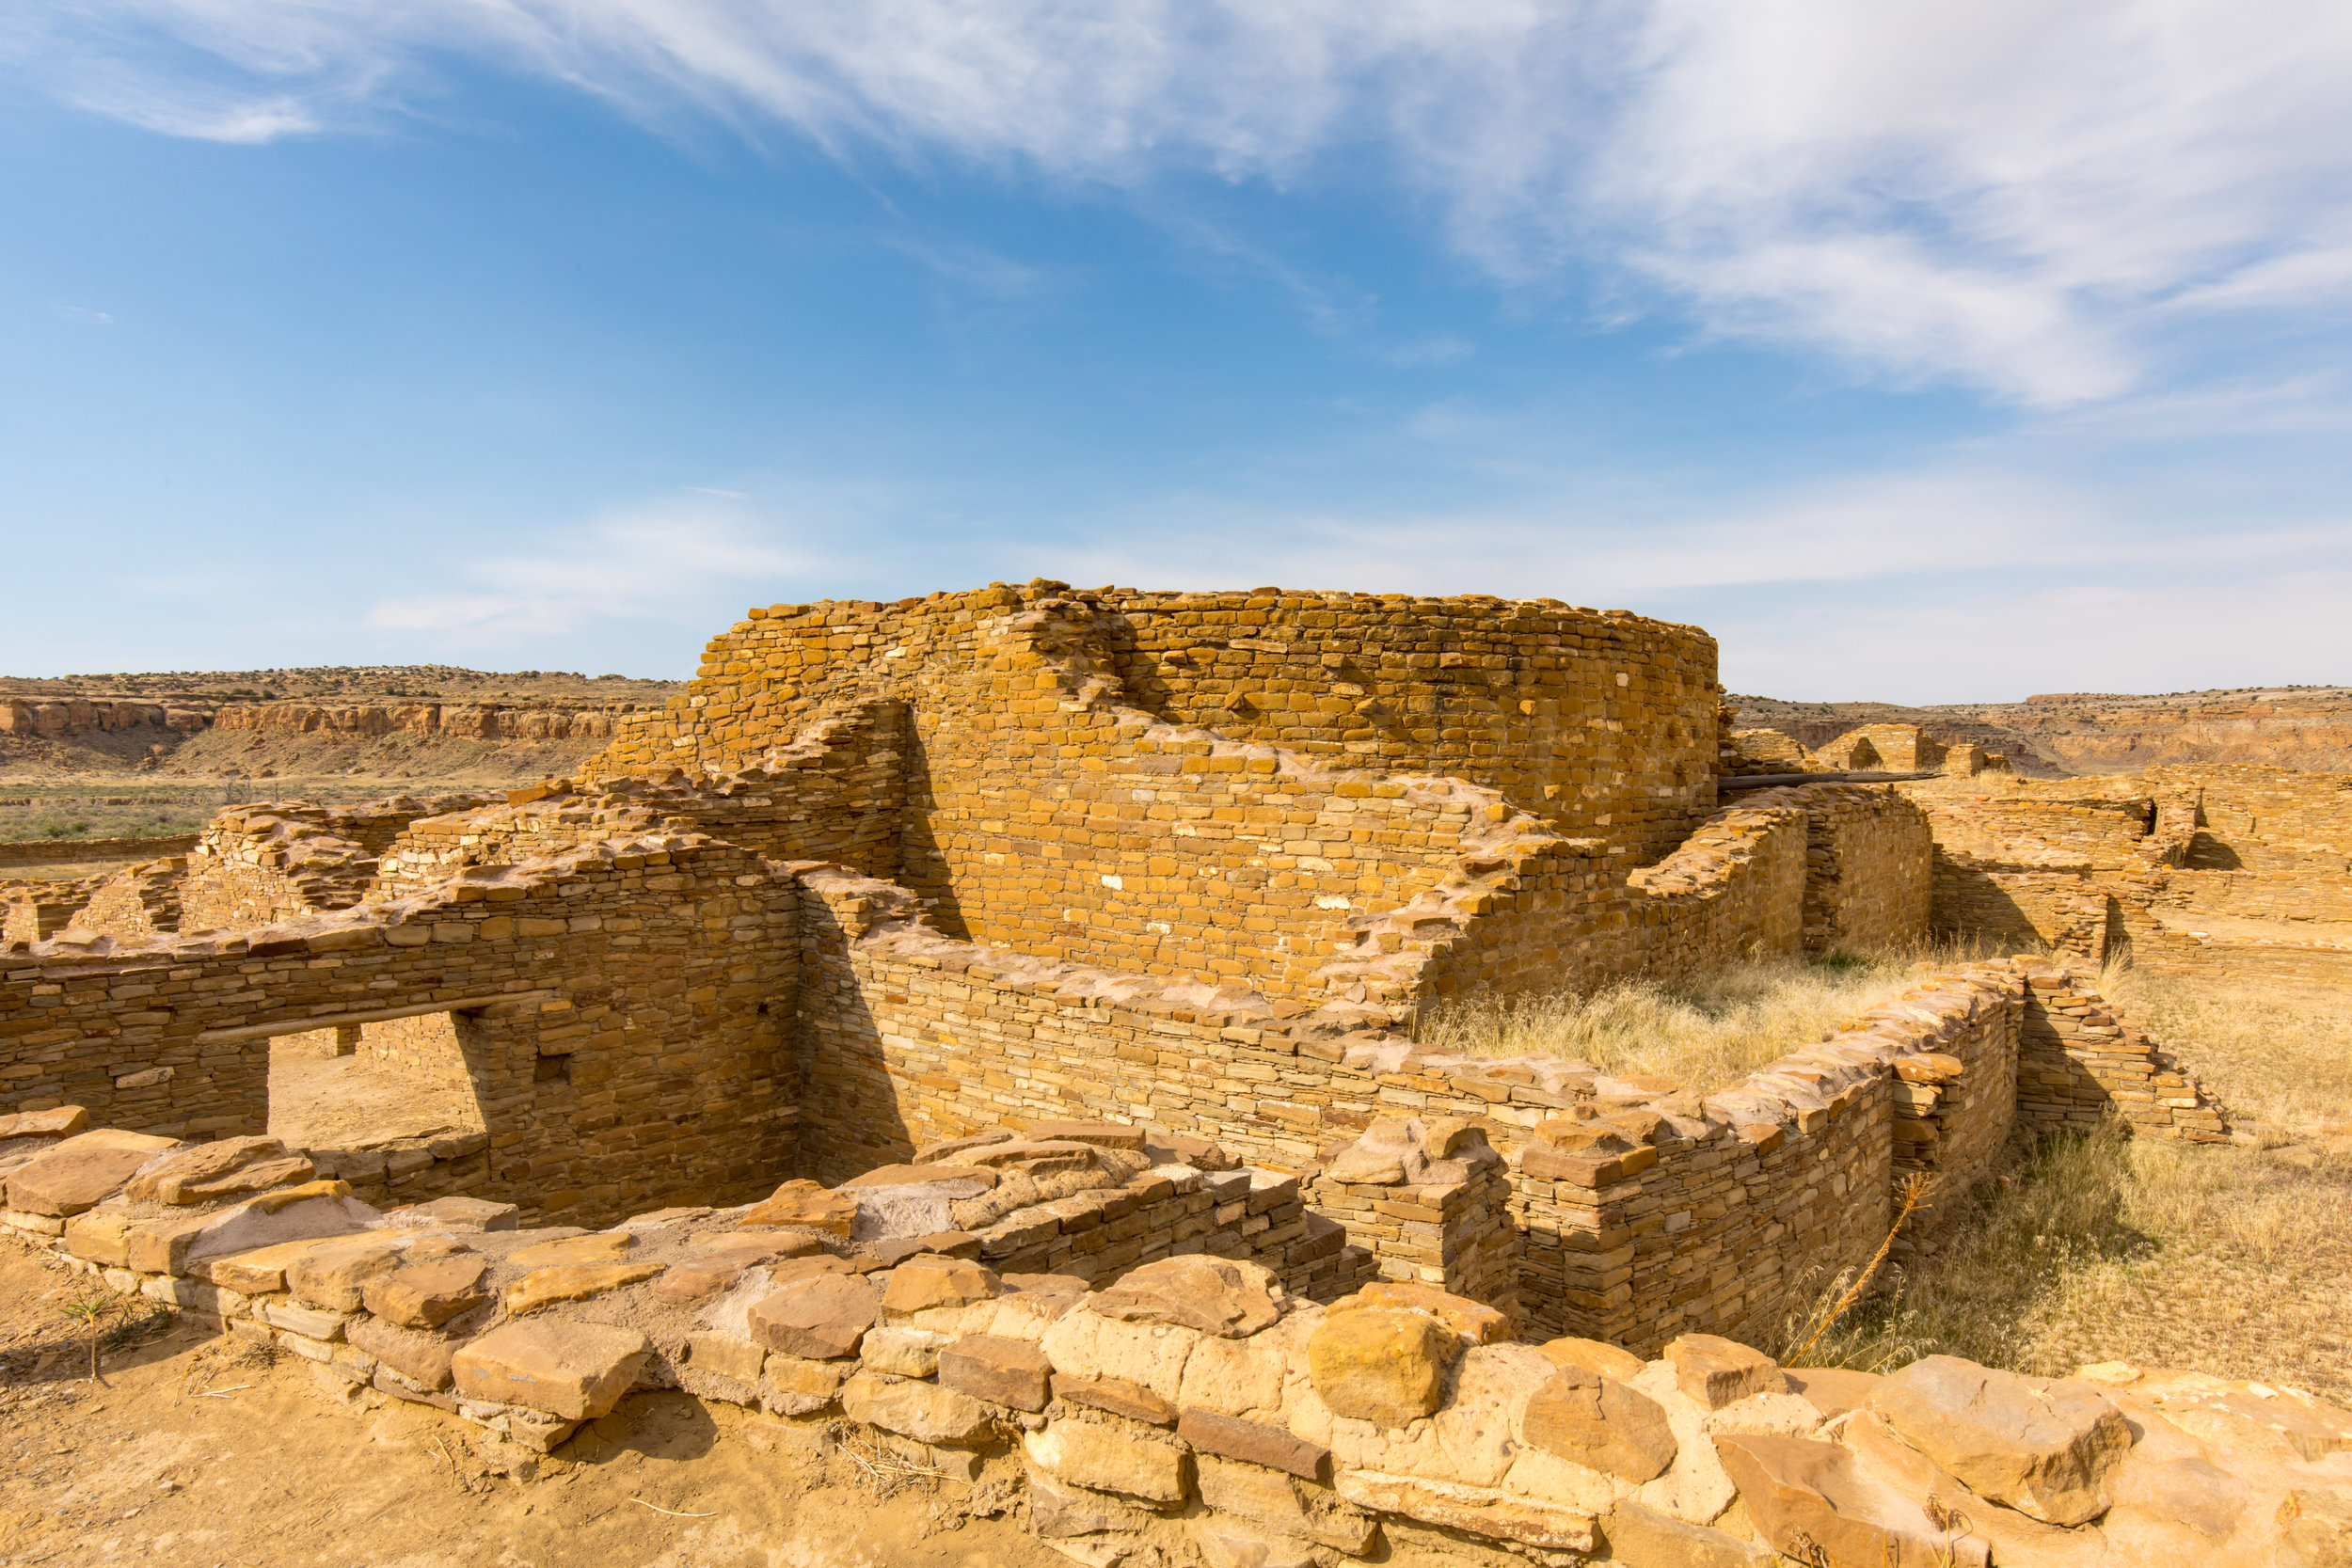 Chaco National Park, Image # 6327